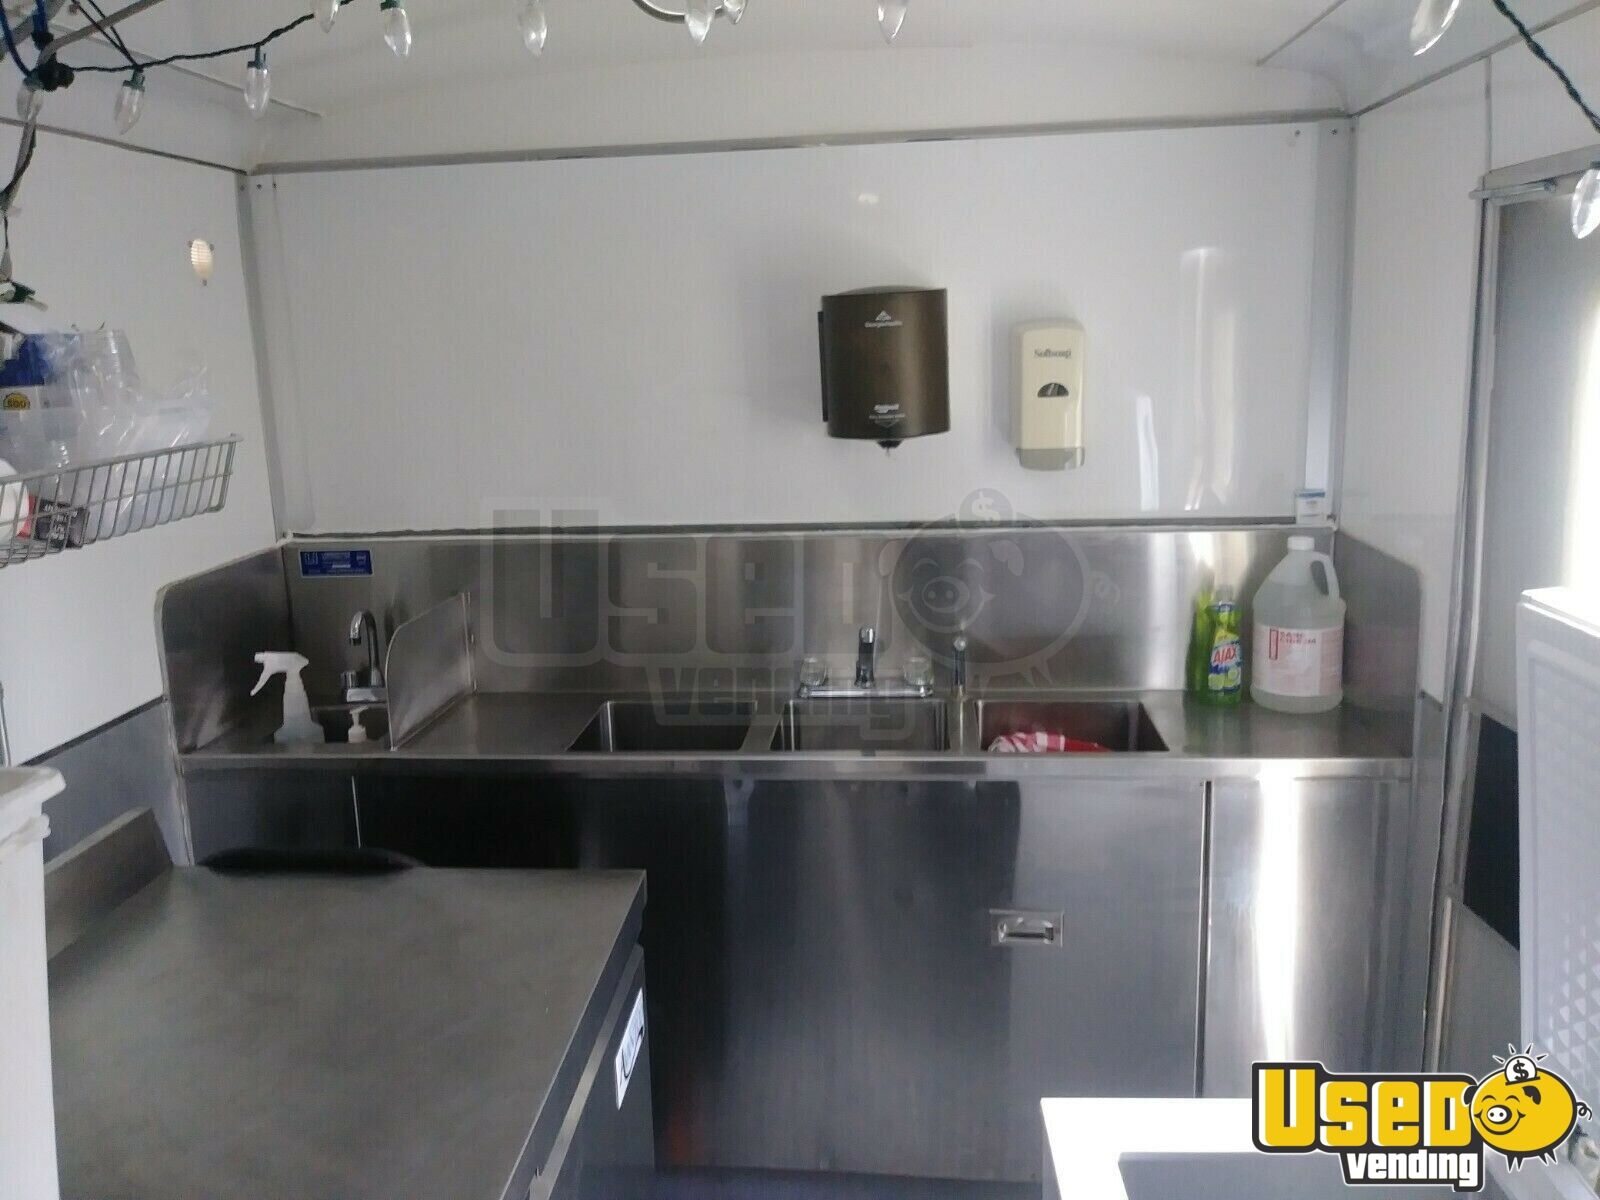 2004 Food Concession Trailer Concession Trailer Ice Block Maker California for Sale - 11